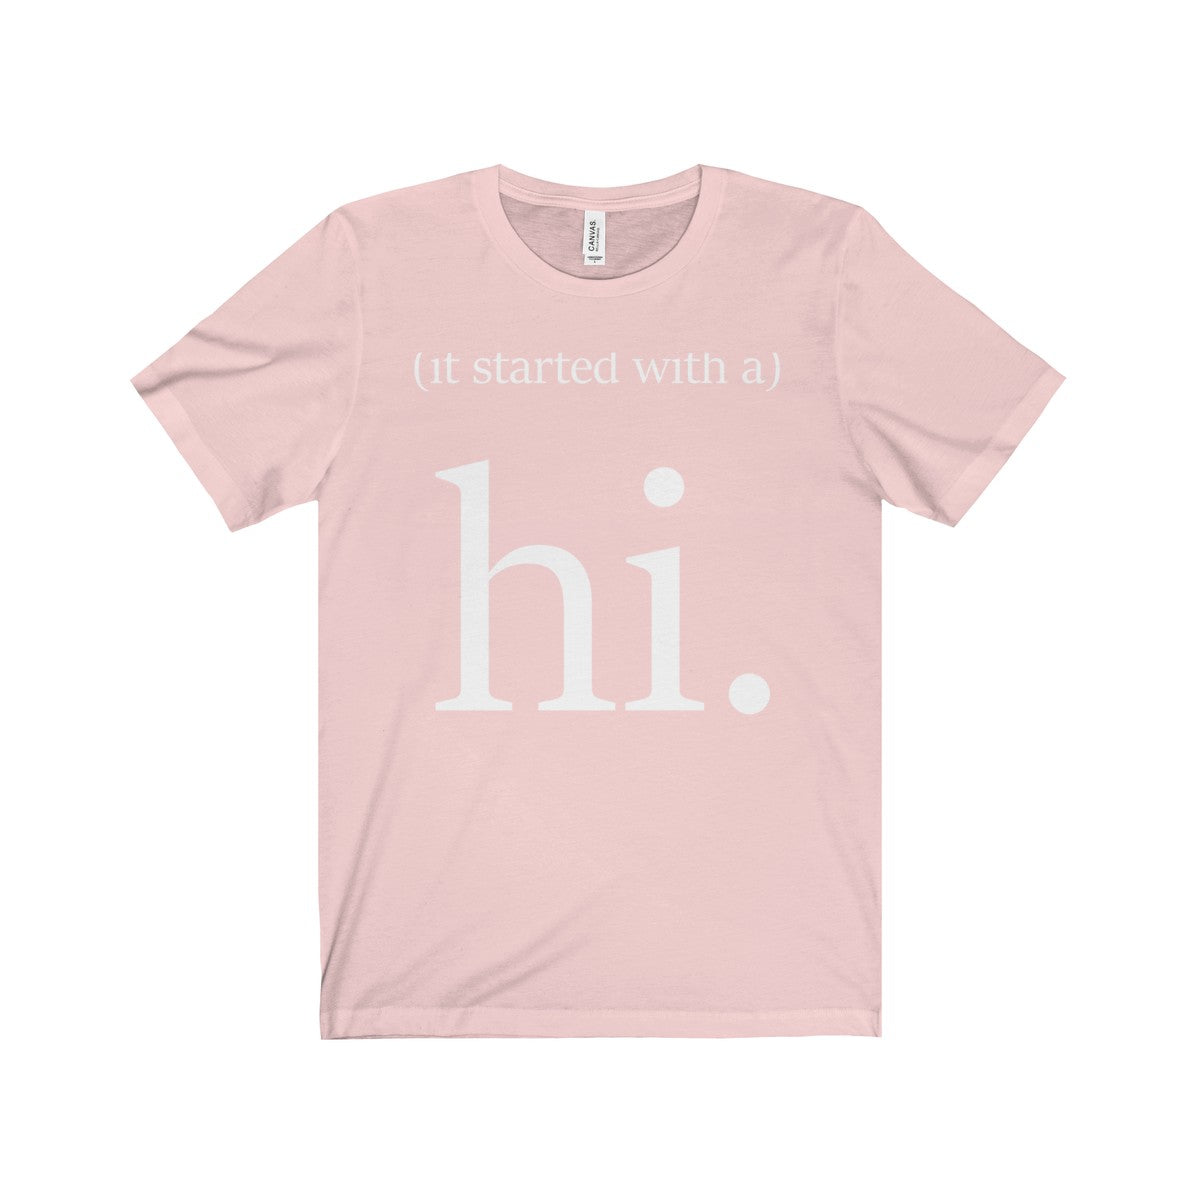 It Starts With A Hi Tee